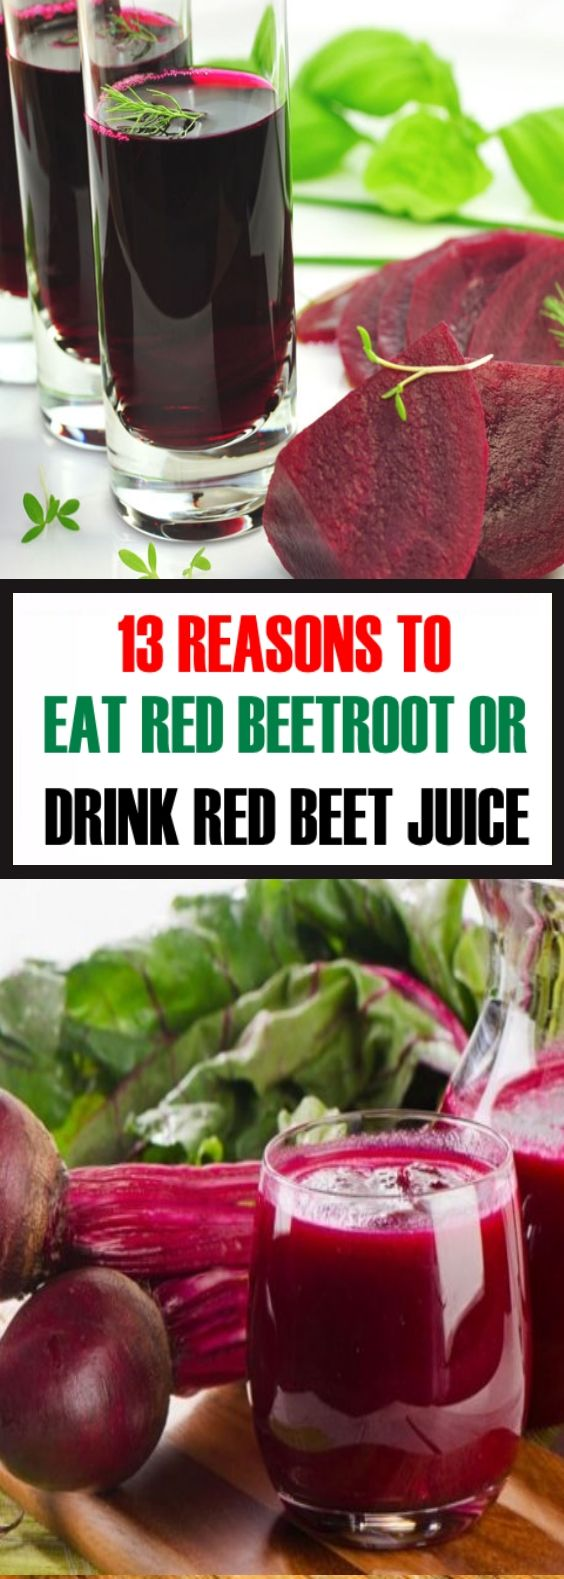 13 Reasons to Eat Red Beetroot Or Drink Red Beet Juice